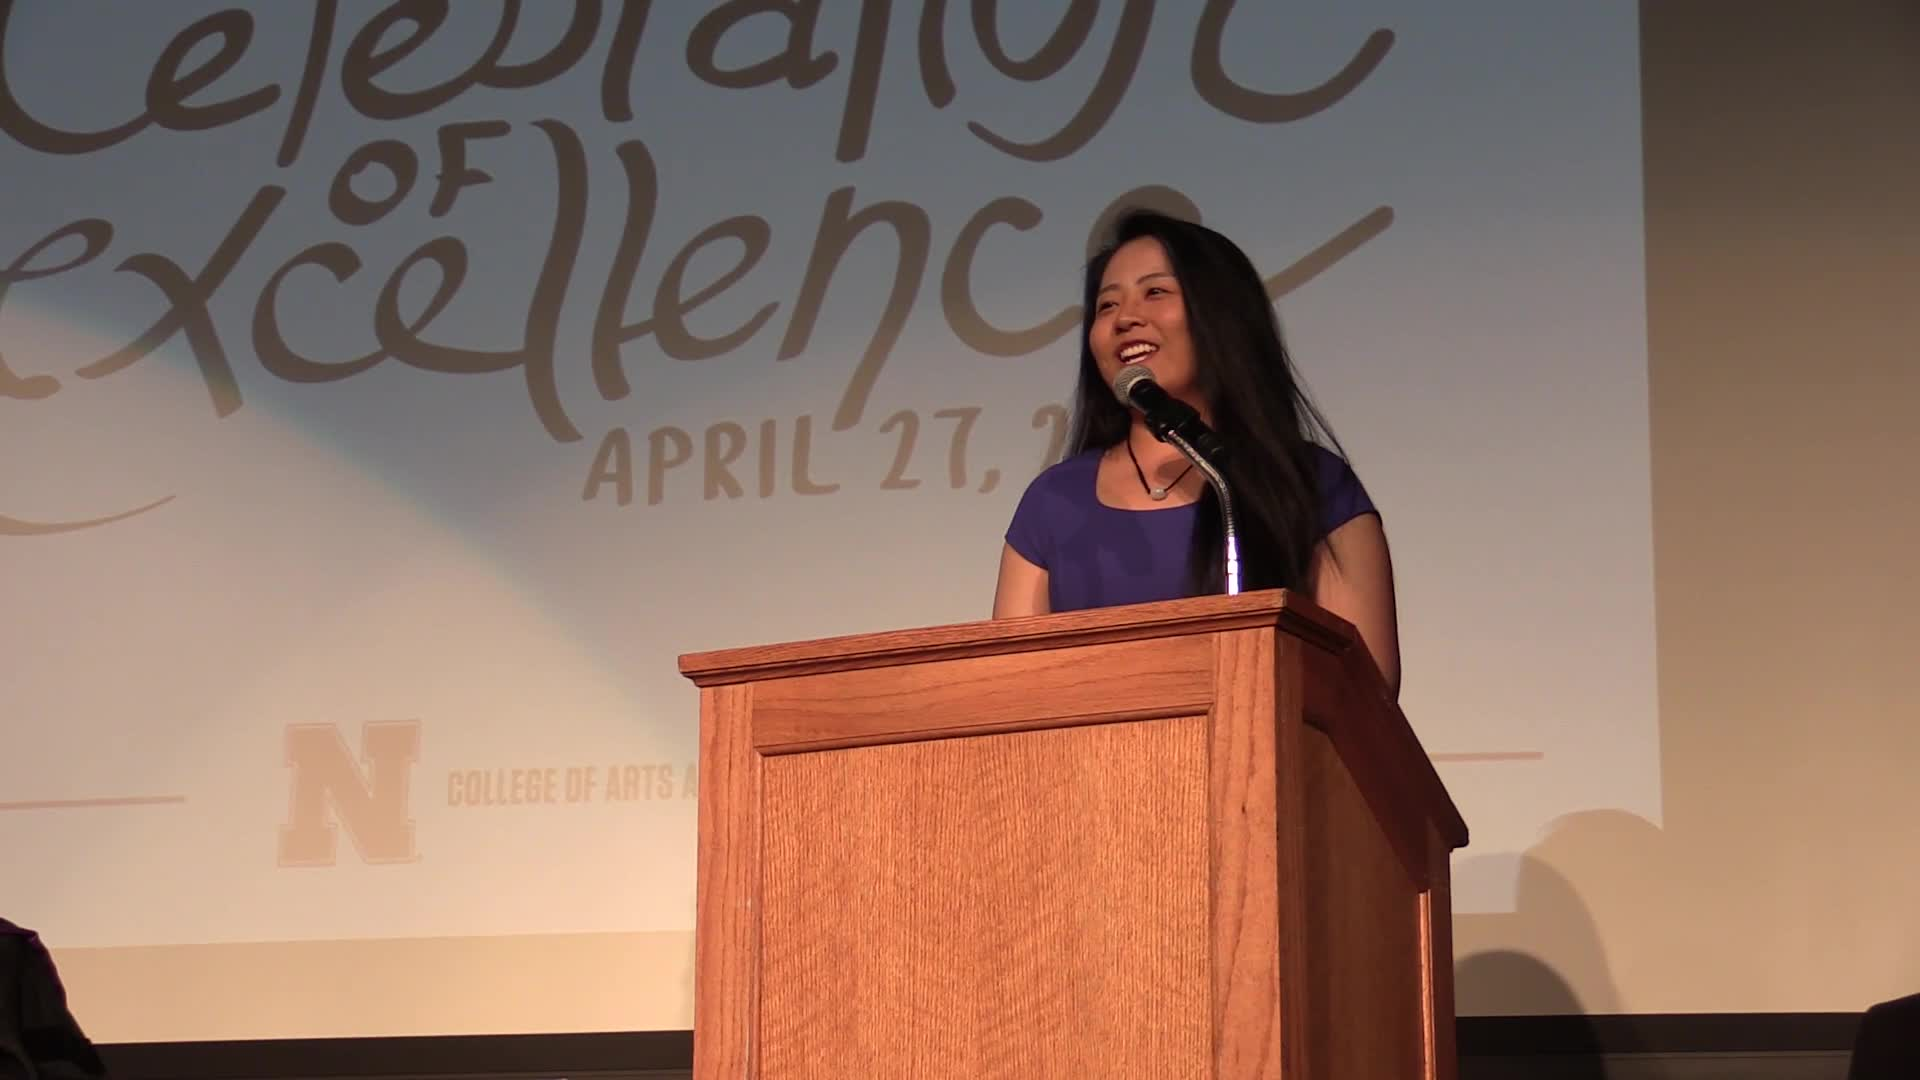 Xinyue Wang's senior reflection at Celebration of Excellence 2018